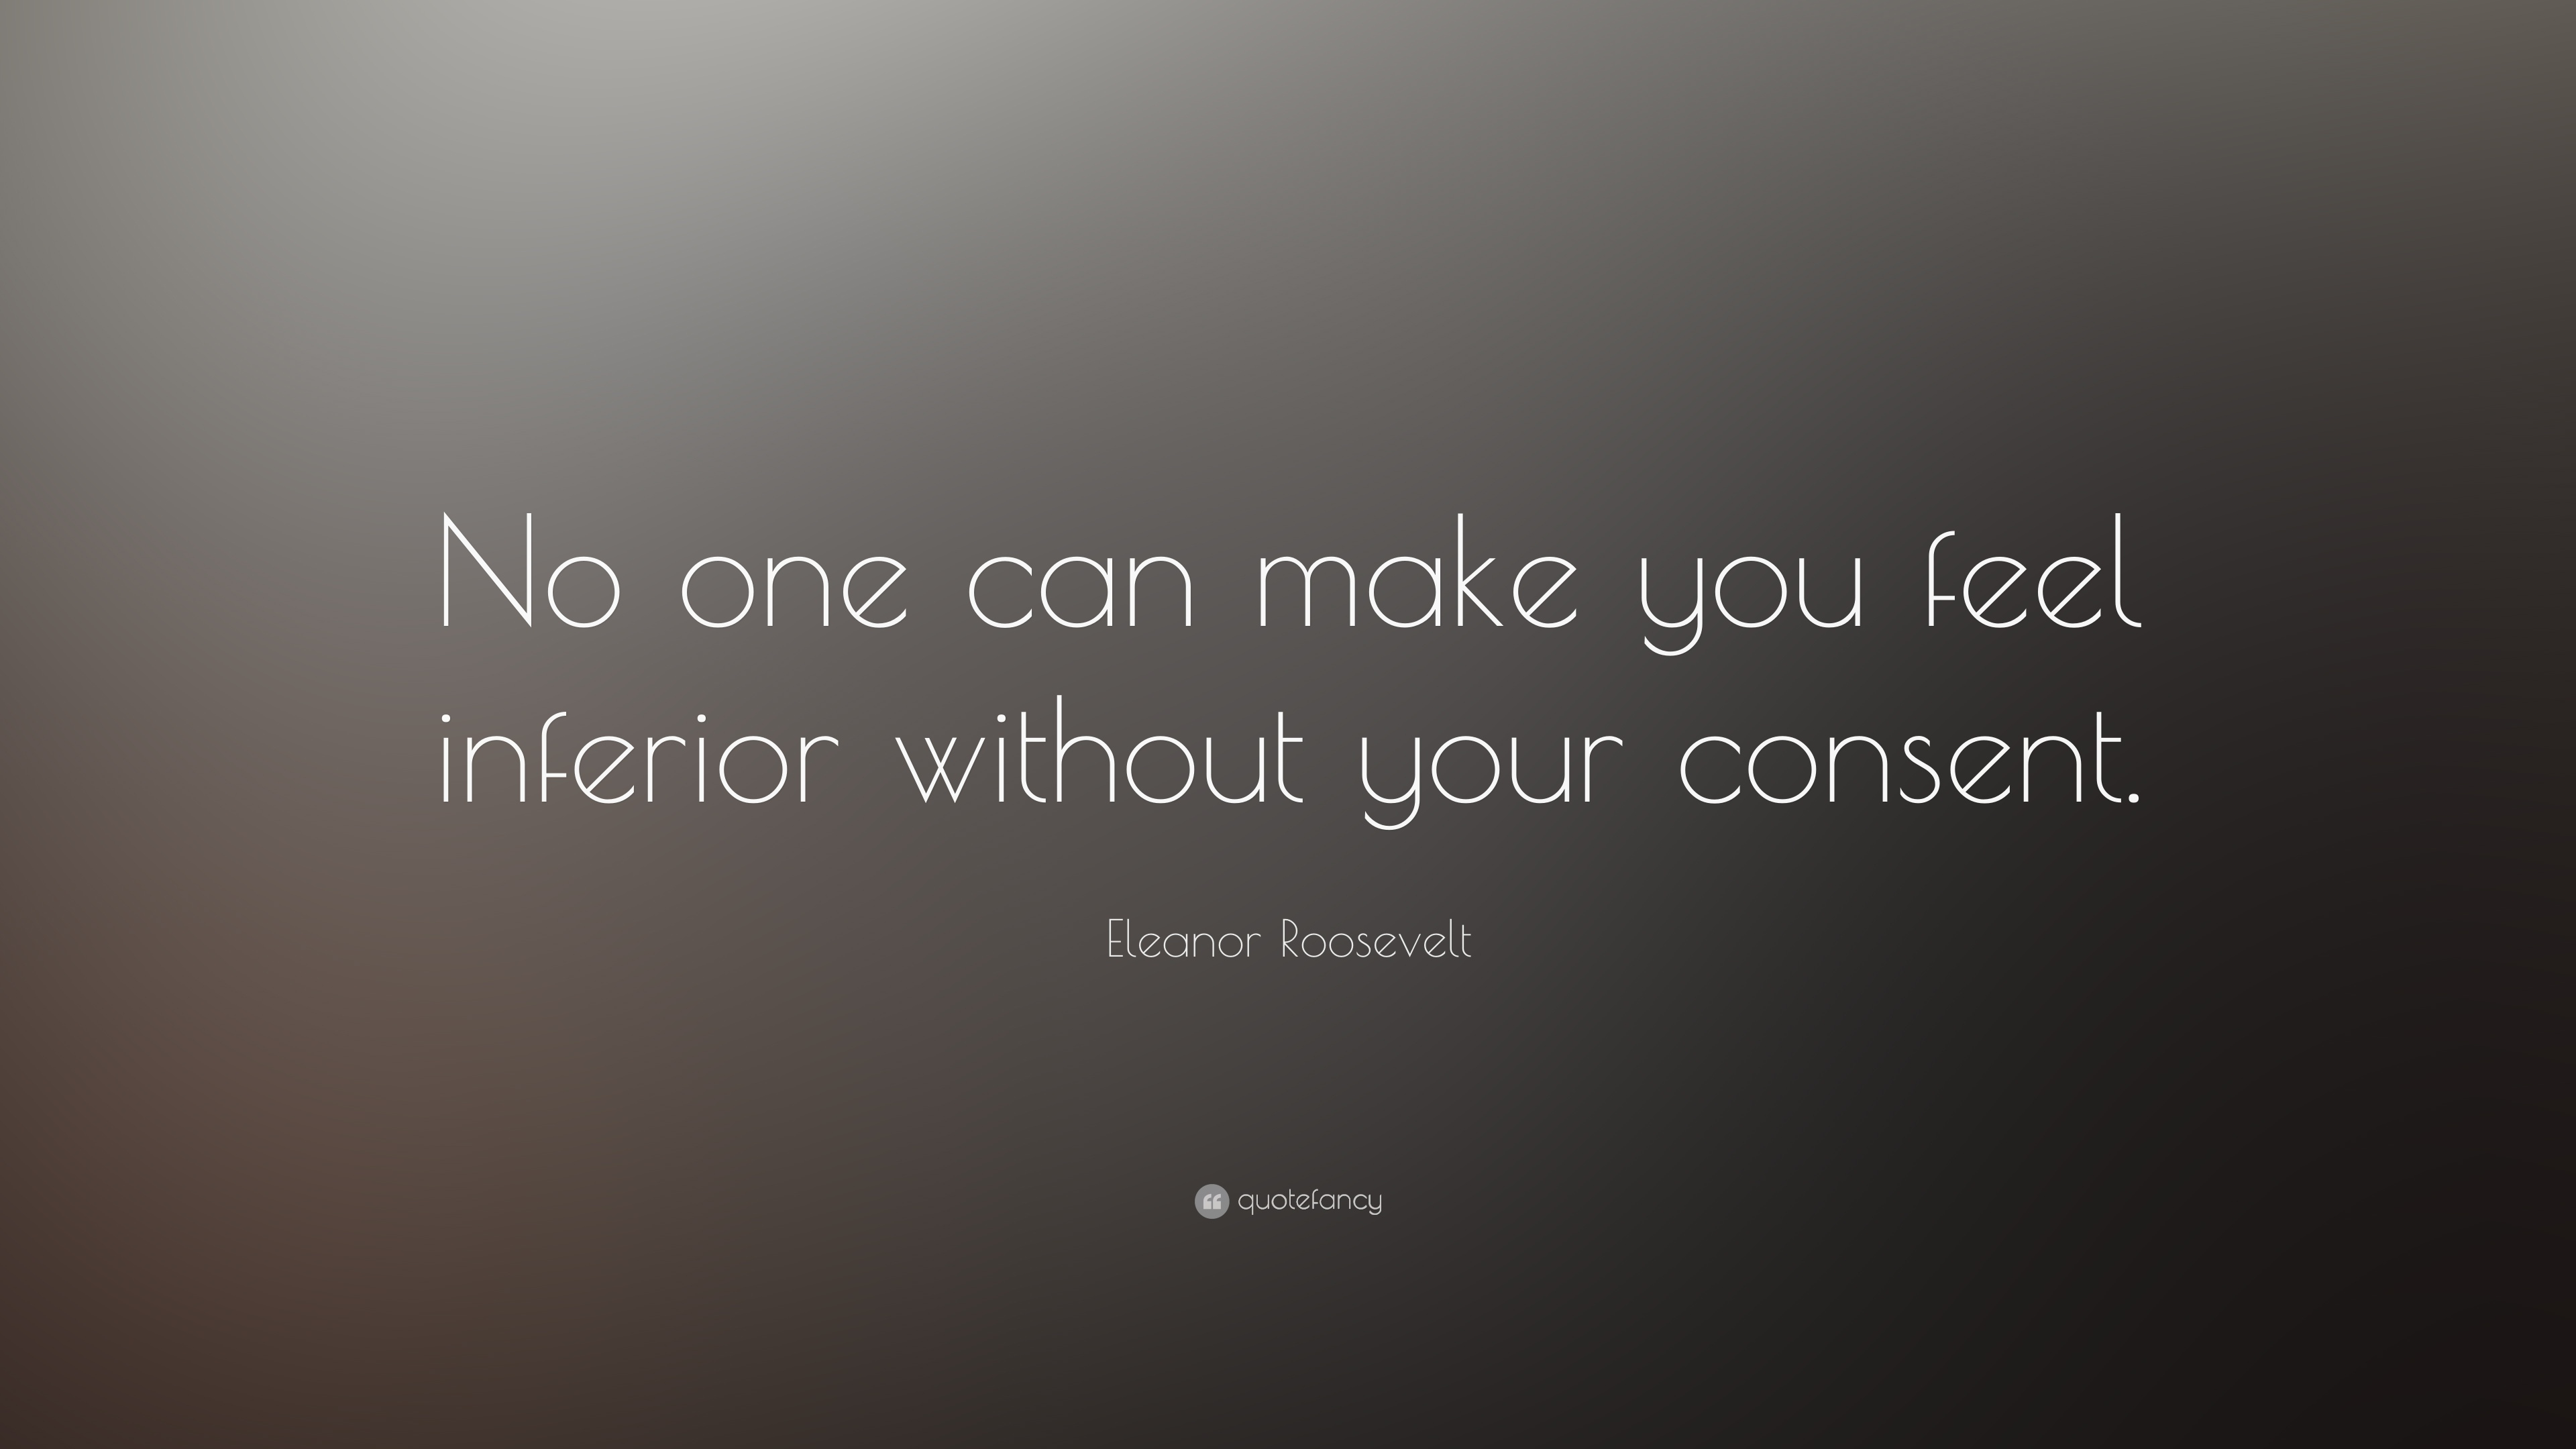 Eleanor Roosevelt Quote Wallpaper Consent Quotes About Strength 23 Wallpapers Quotefancy